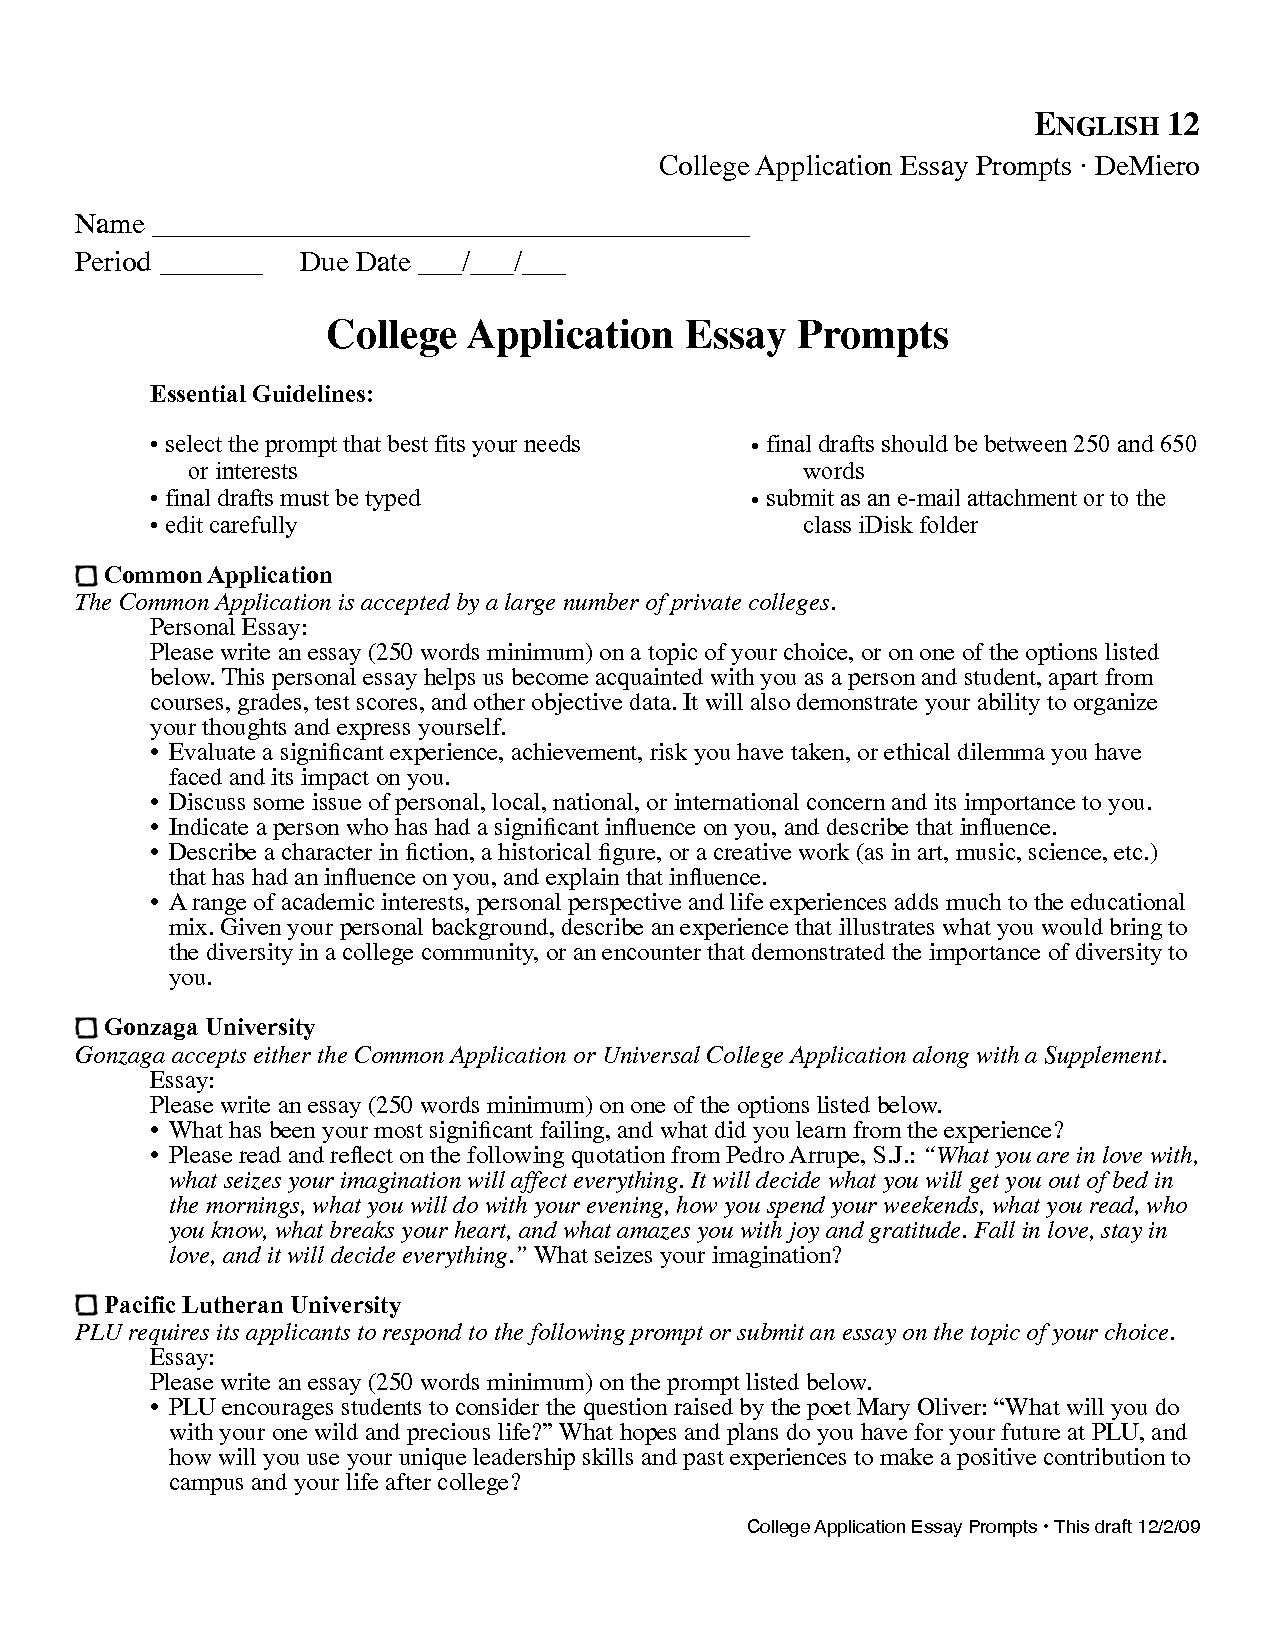 essay college application important Check out these sample college application essays to see what a successful college application essay looks like and stimulate your own creativity.